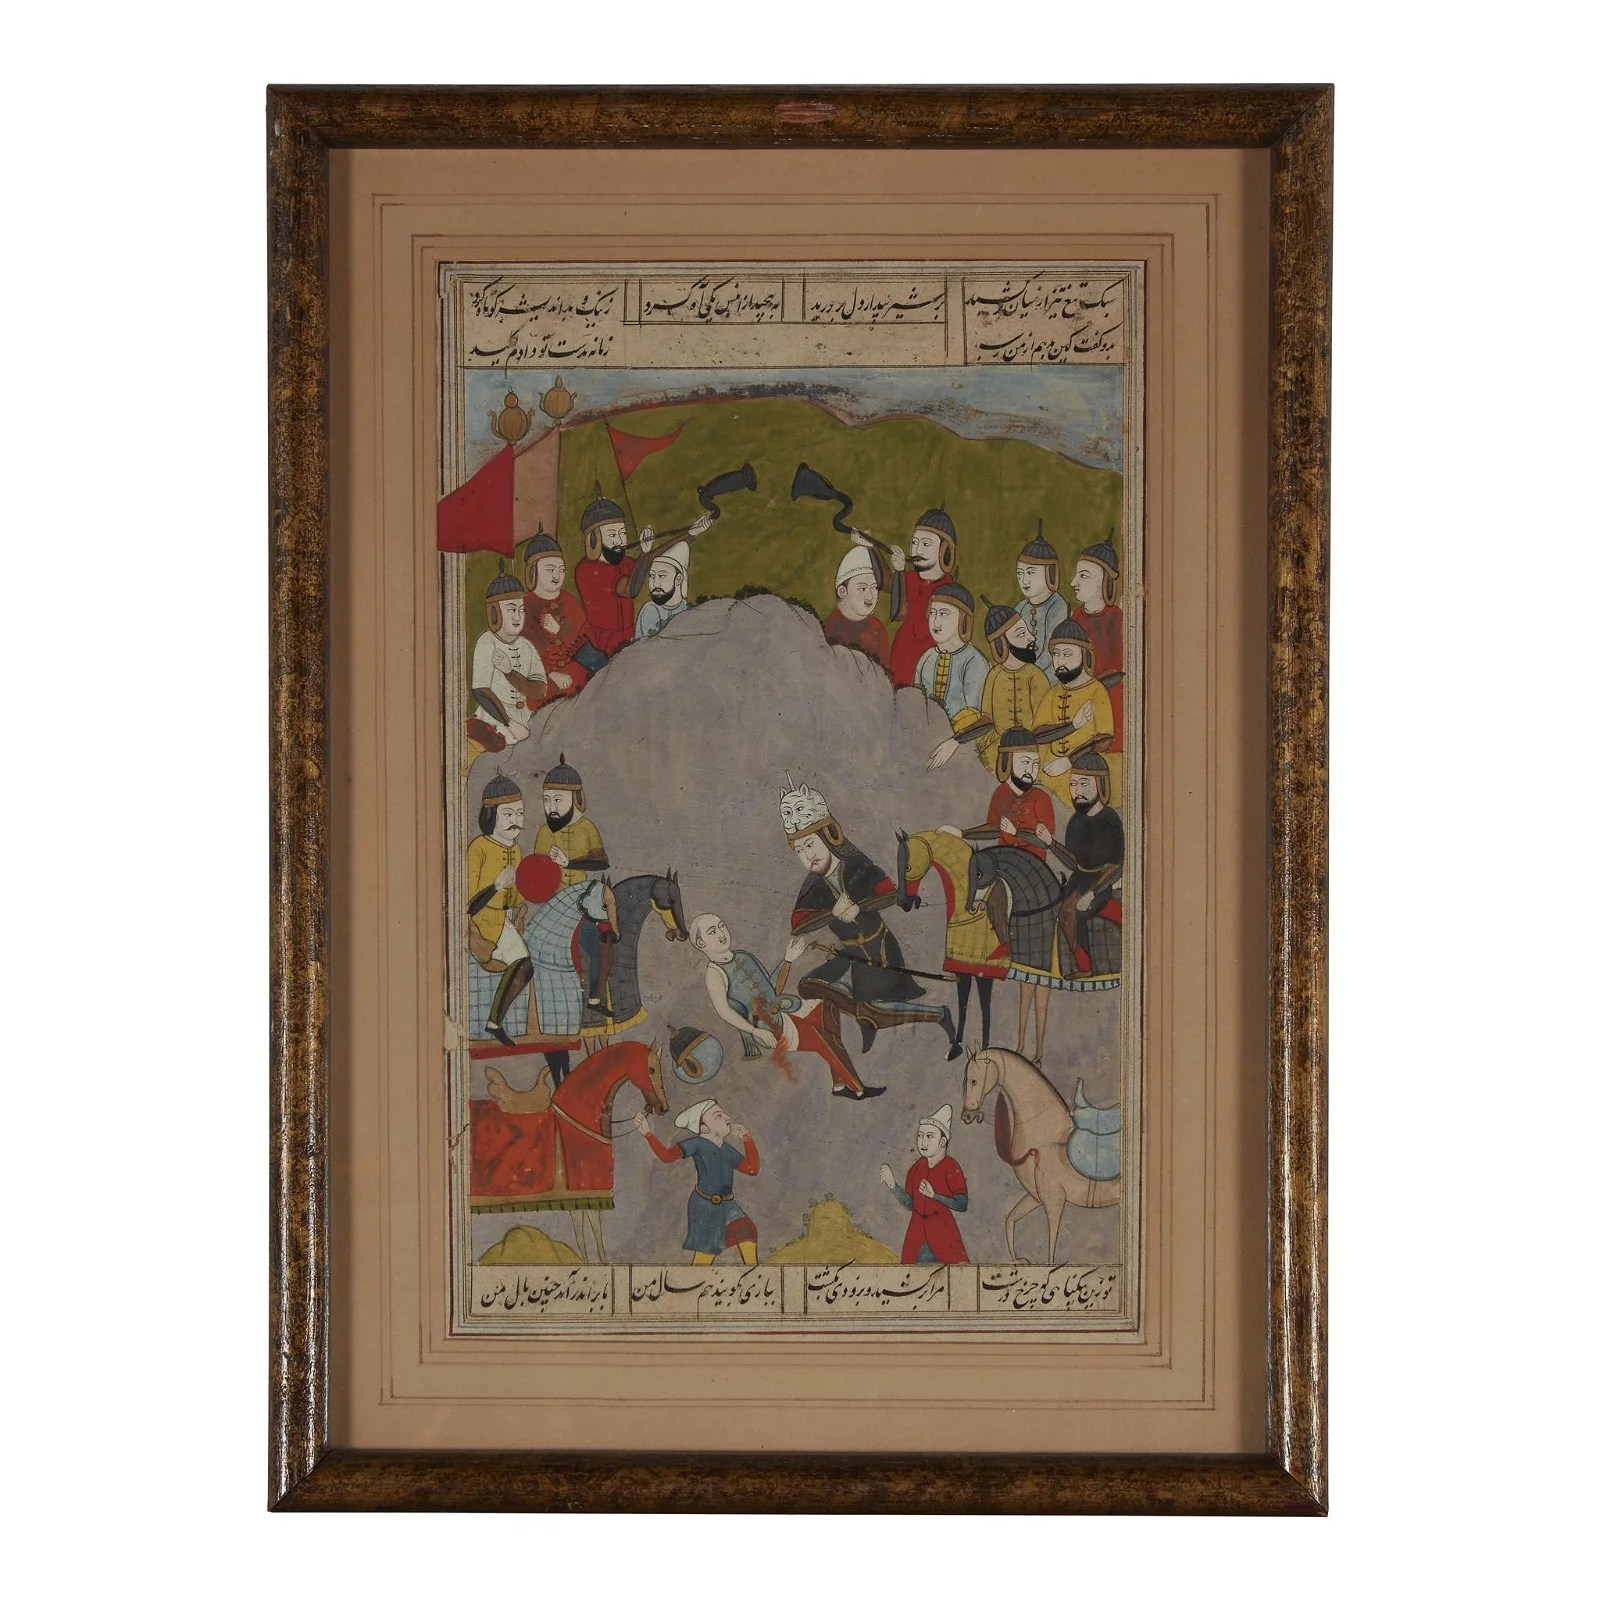 A Kashmiri miniature painting depicting Rustam and the